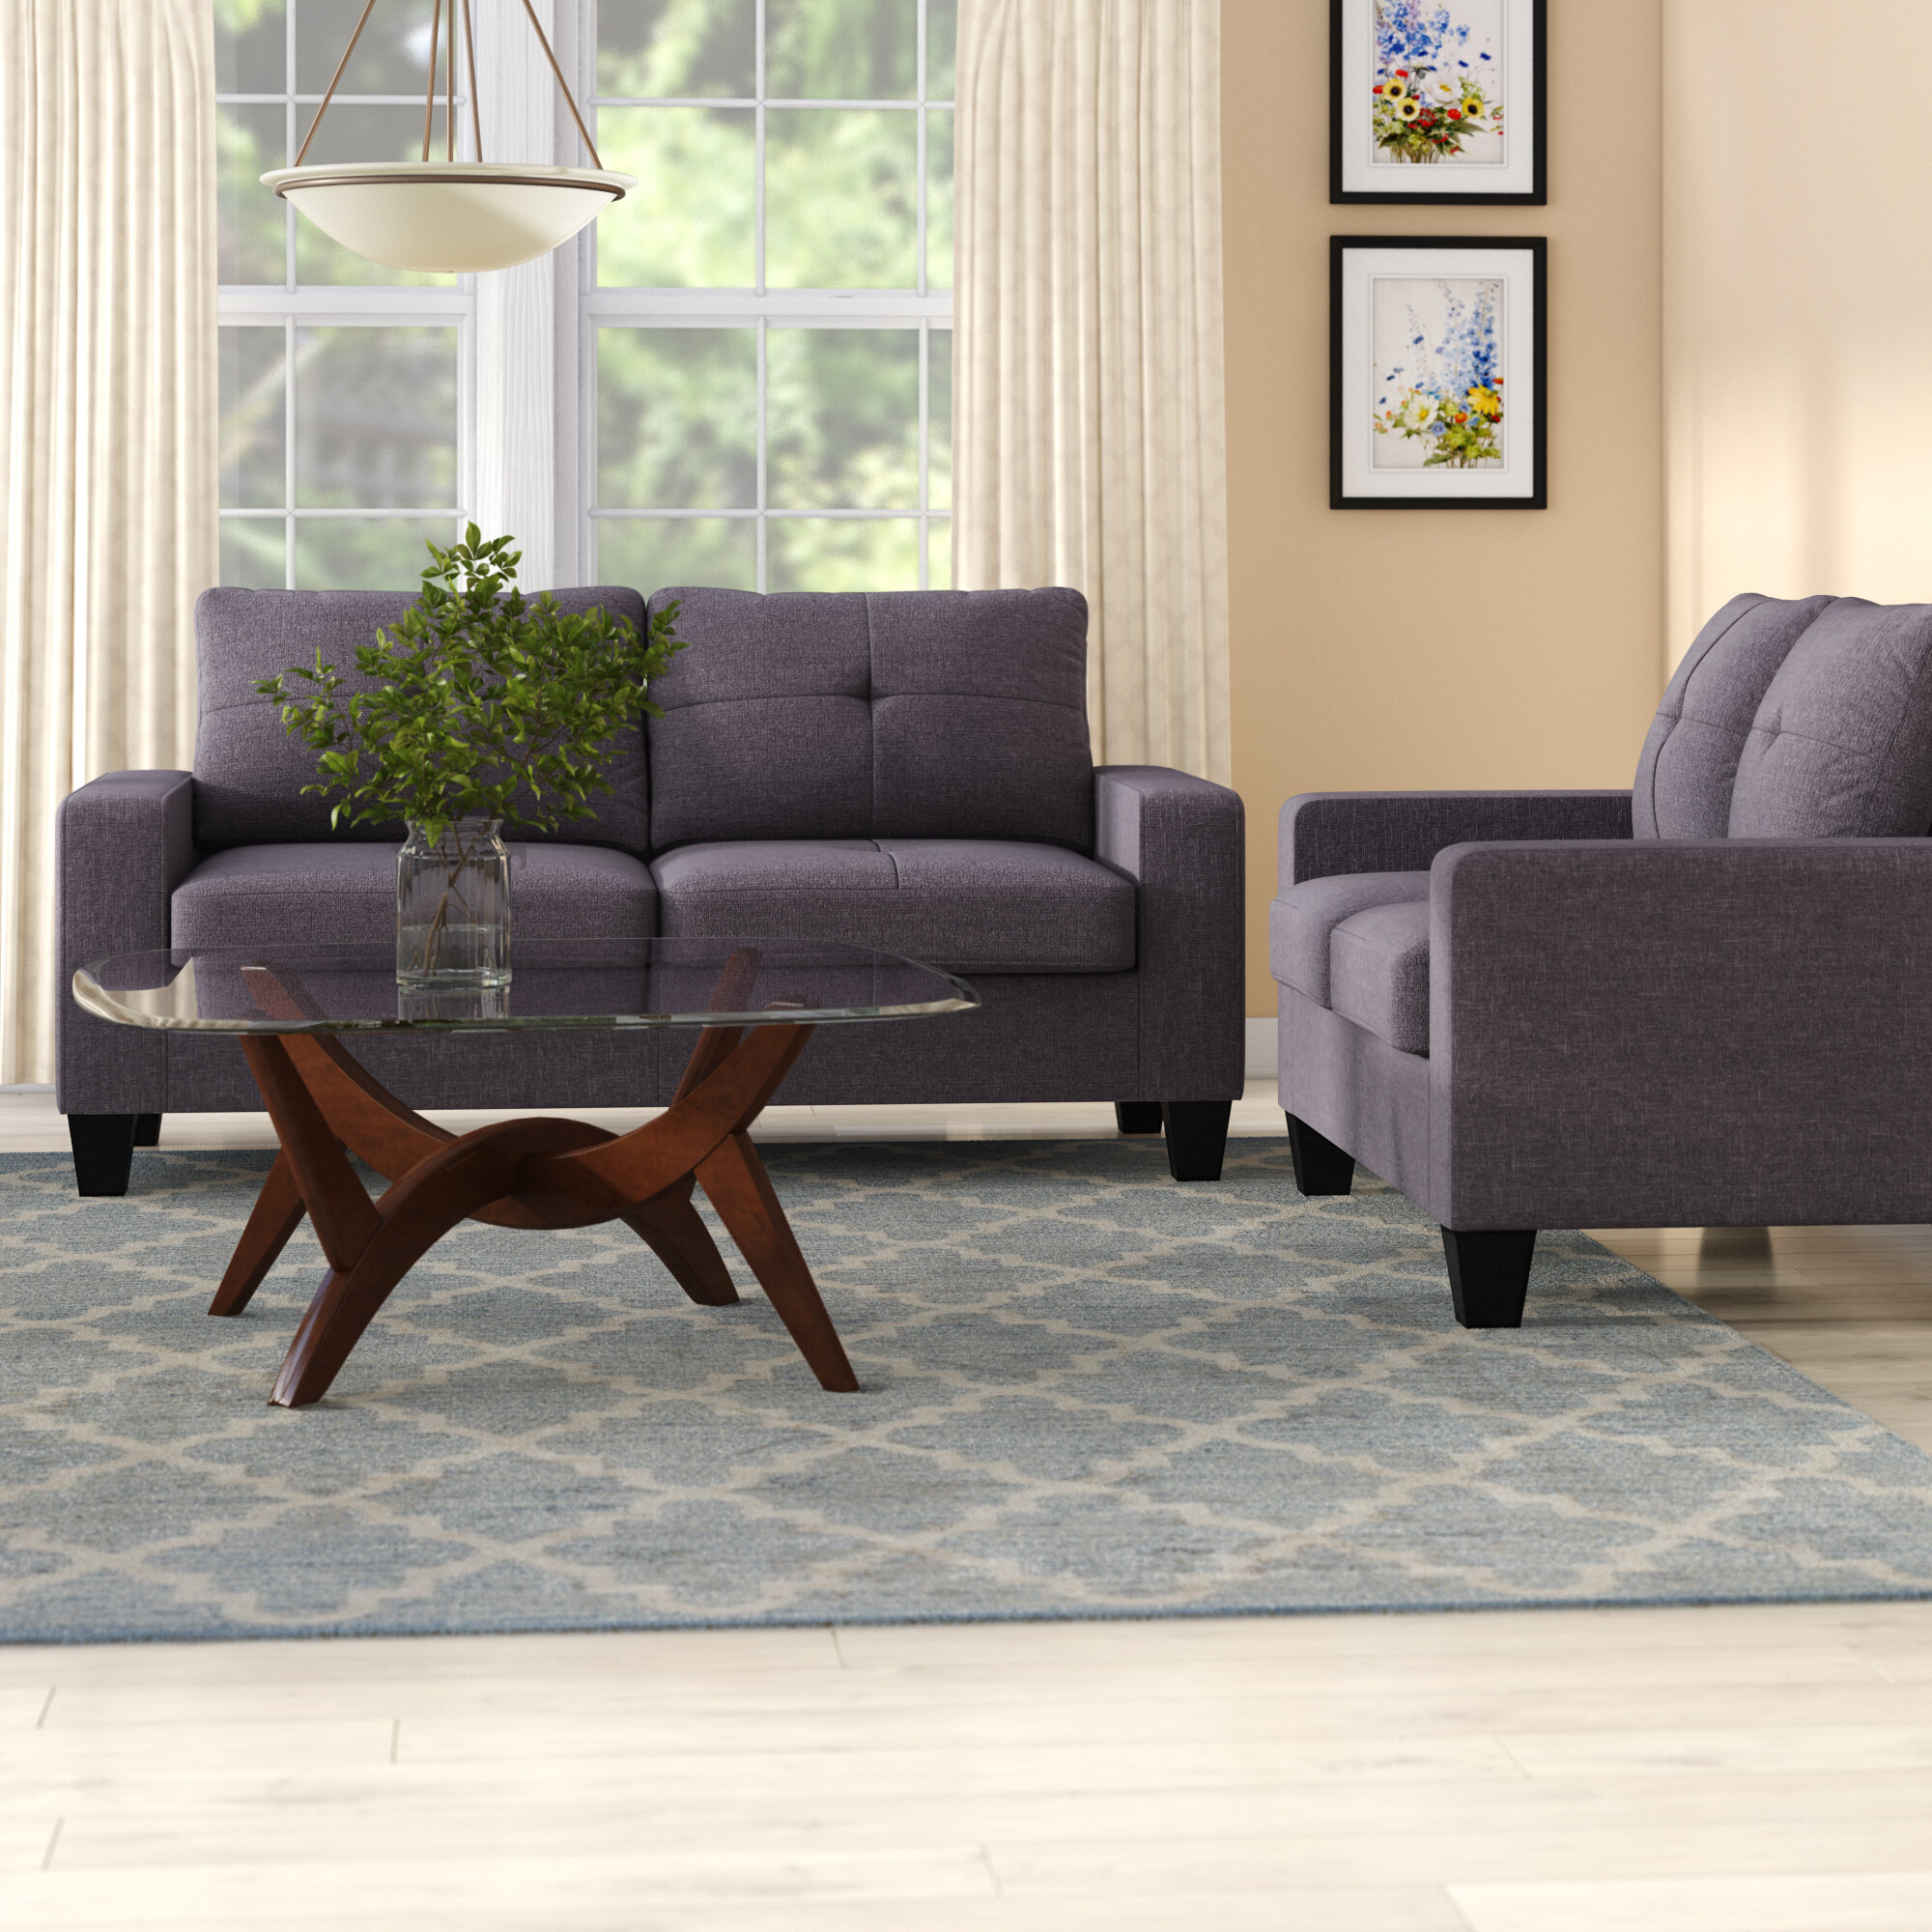 Home Square 2 Piece Living Room Set with Loveseat and Armchair in Gray